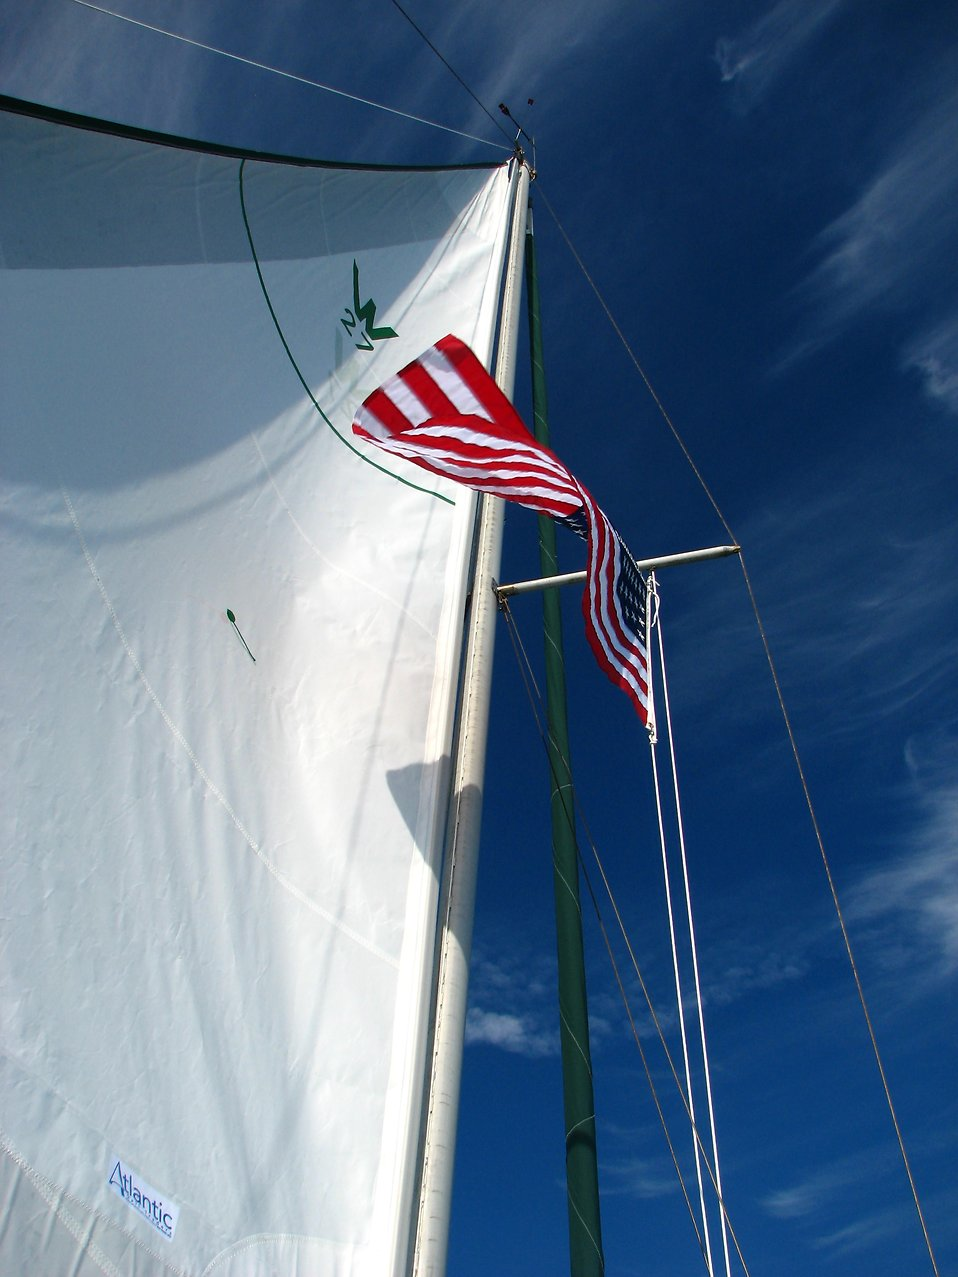 An American flag and a sail on a sailboat : Free Stock Photo